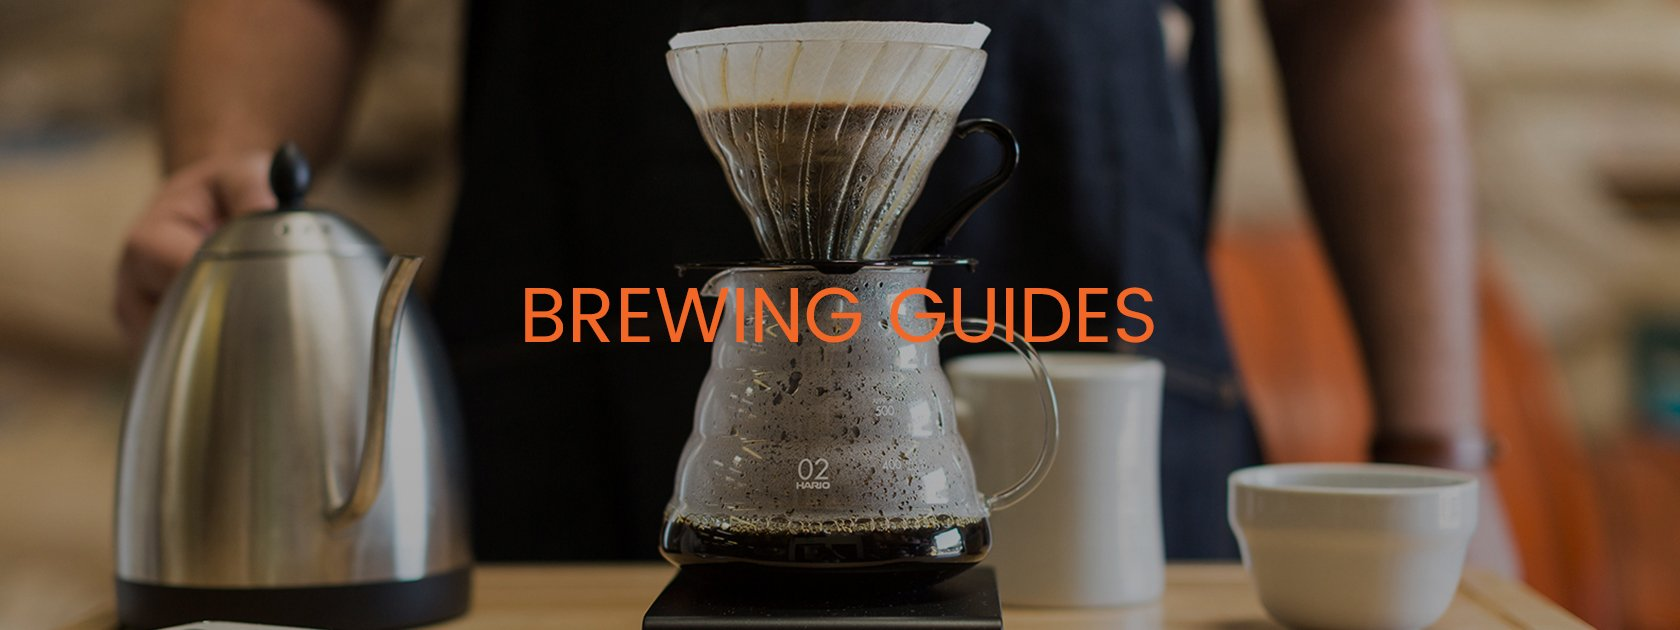 BREWING GUIDES - V60 POUR OVER